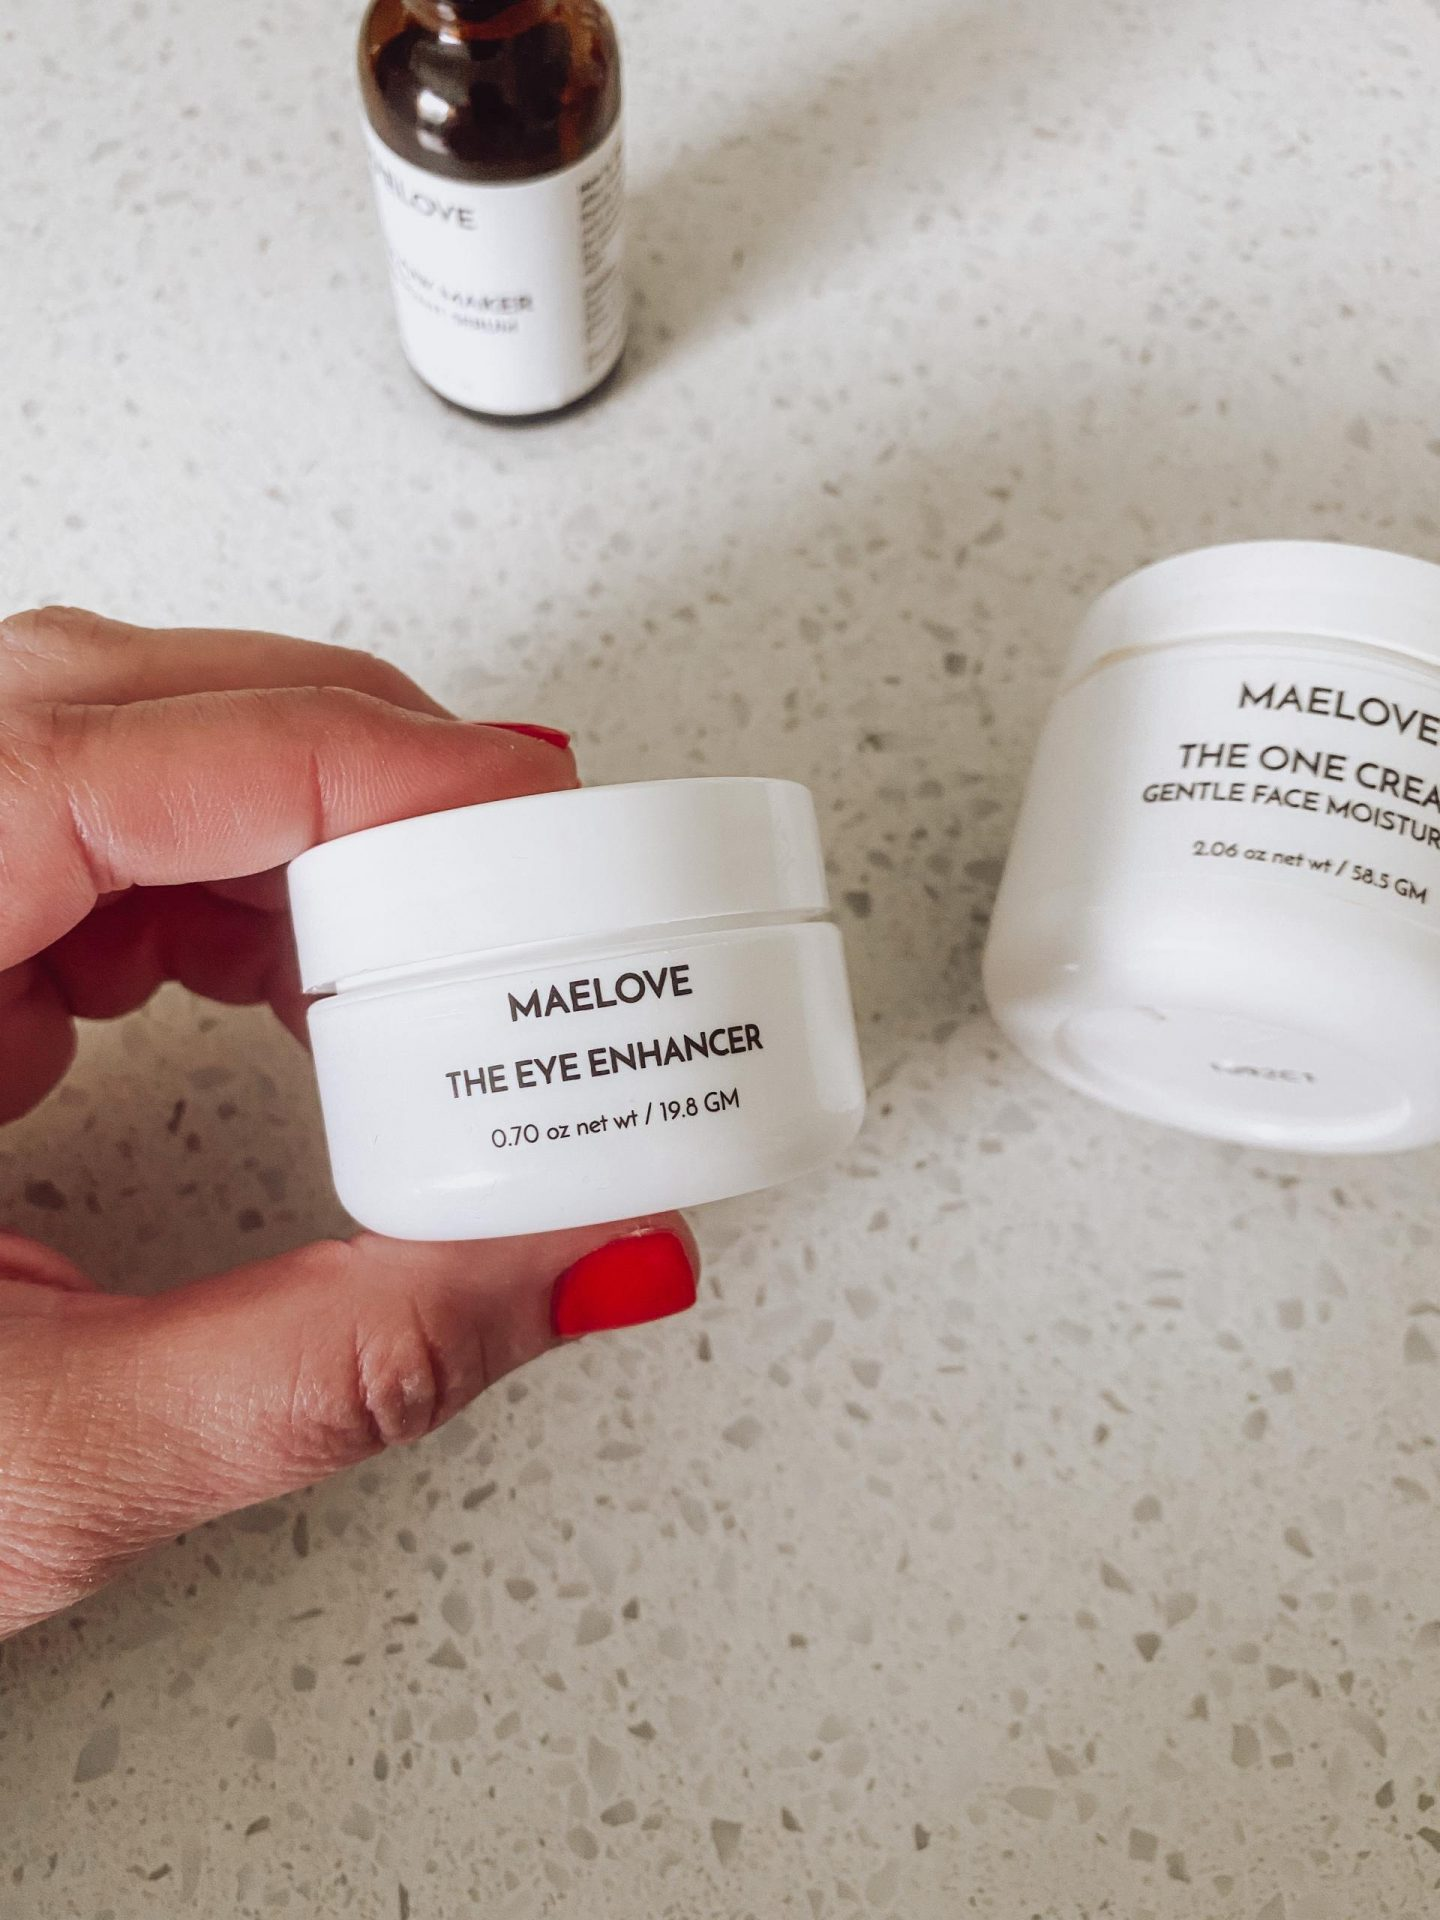 NC blogger Rebecca Lately is sharing her morning skincare routine with the Maelove Glow Maker. Check out this Vitamin C serum!